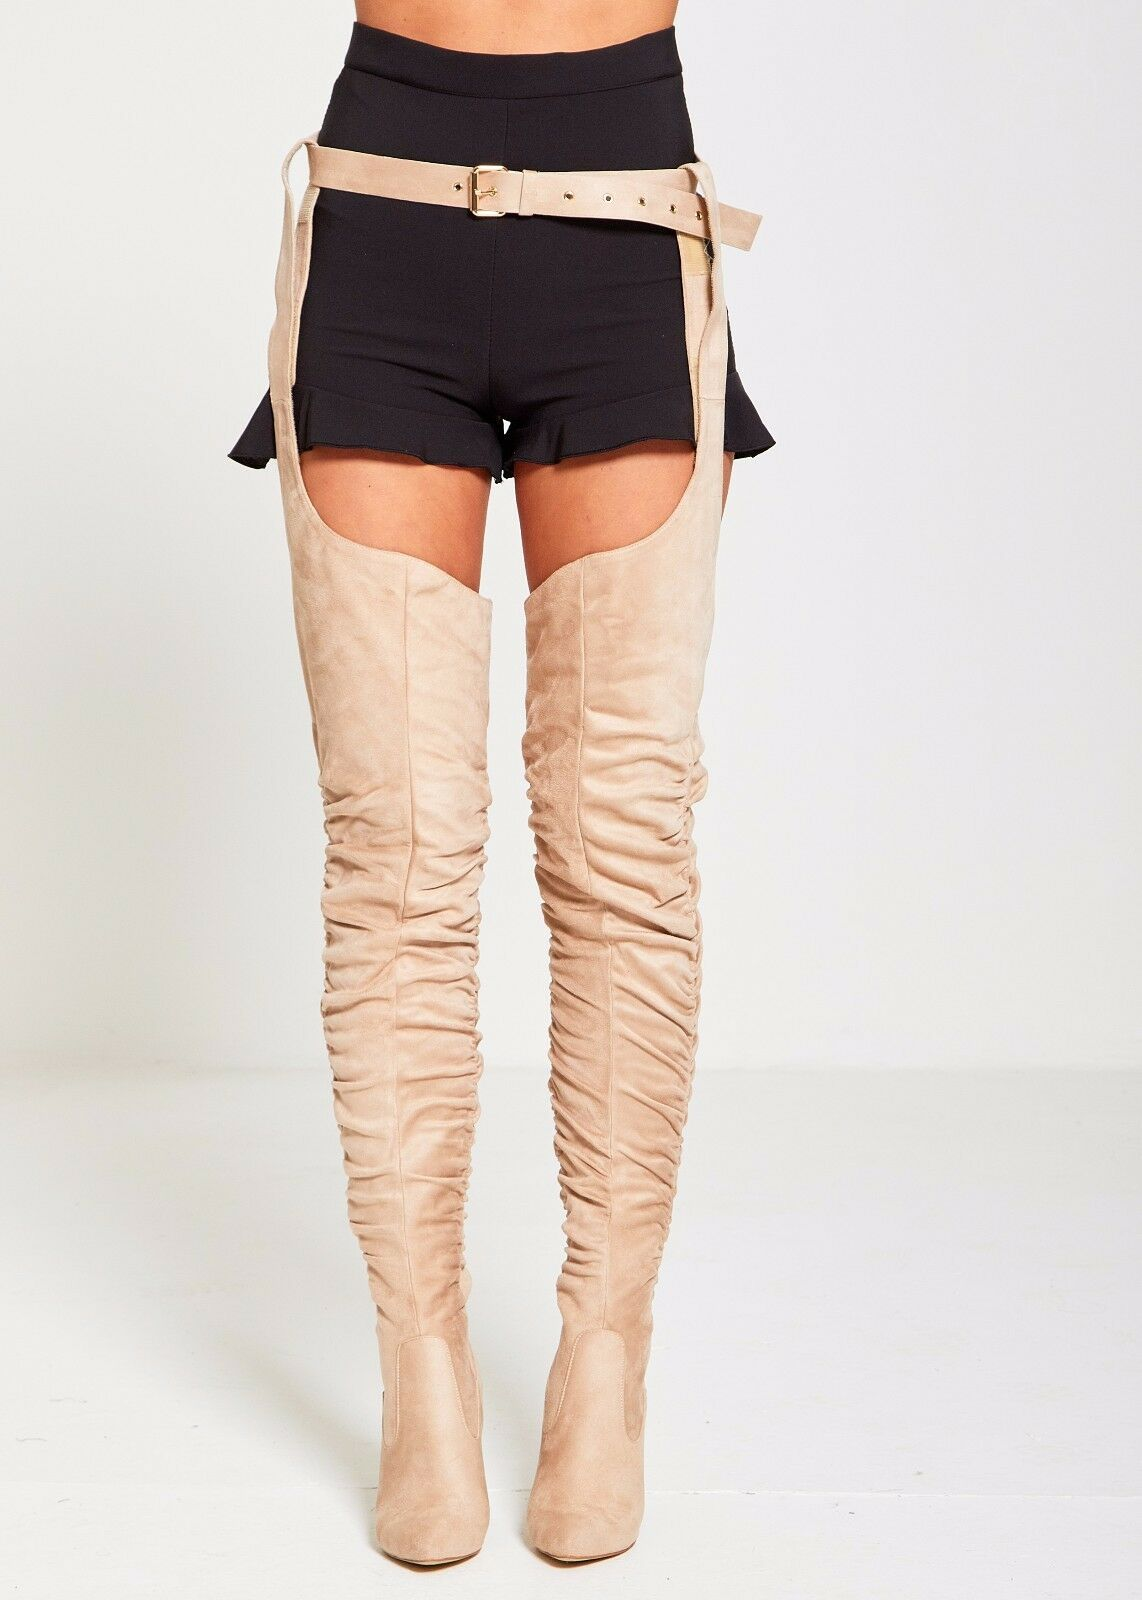 DIVADAMES Rihanna THIGH FAUX SUEDE RUCHED THIGH Rihanna HIGH BELTED BOOTS d4f3b2